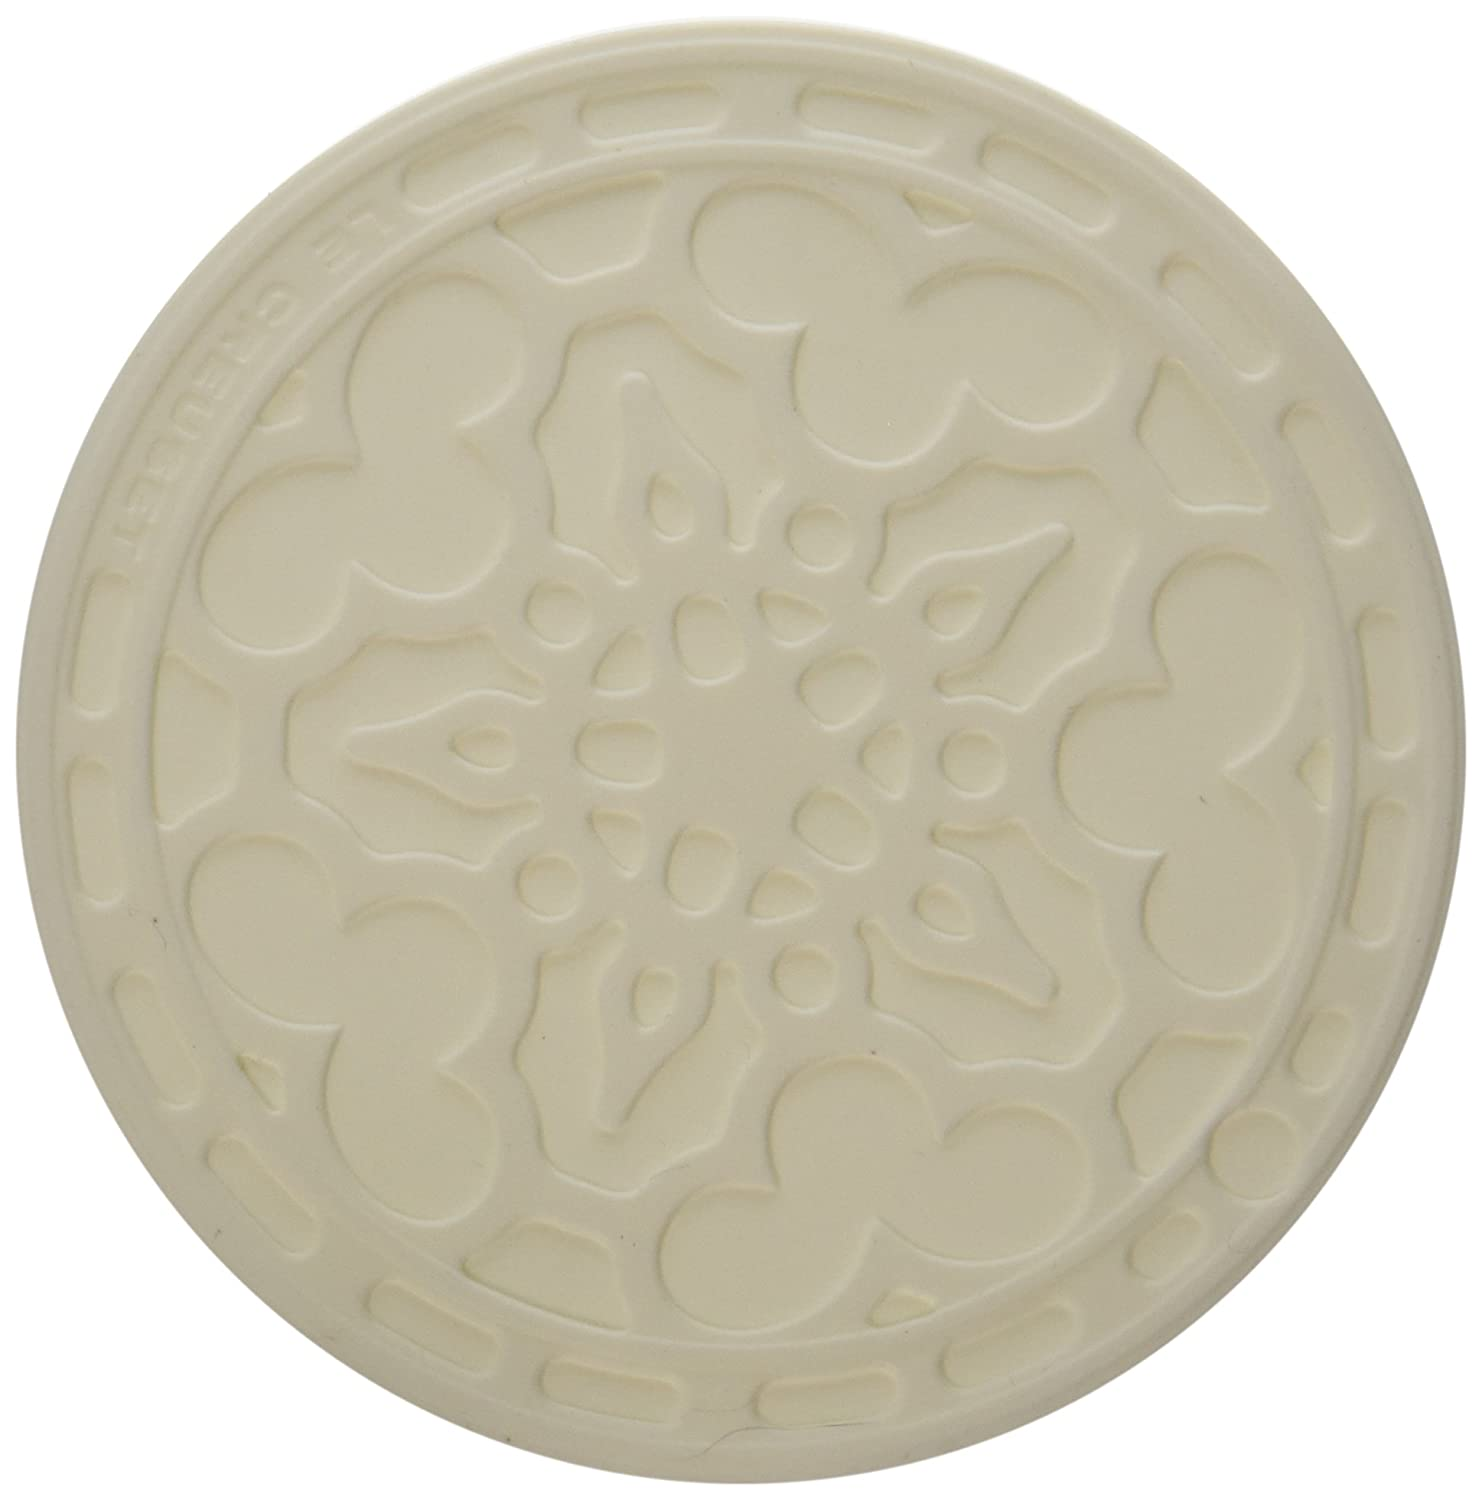 Le Creuset Silicone Set of 4 French Coasters, White